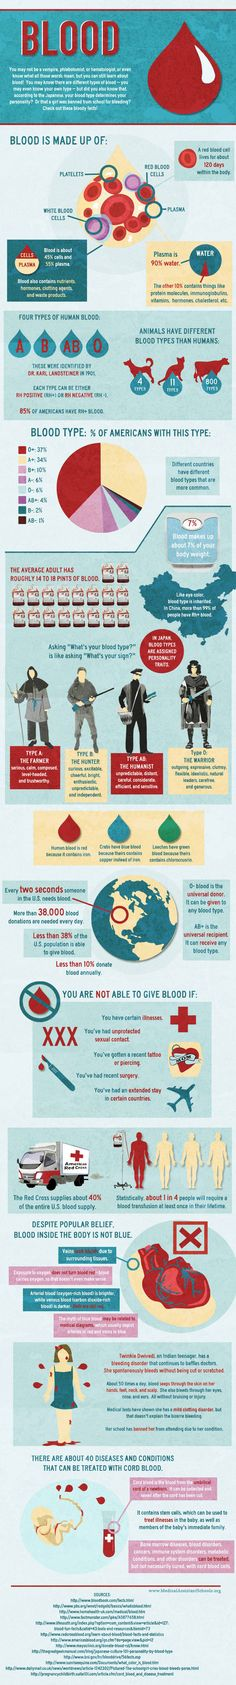 Fascinating Facts About Blood. Only 4% of the population has my blood type!